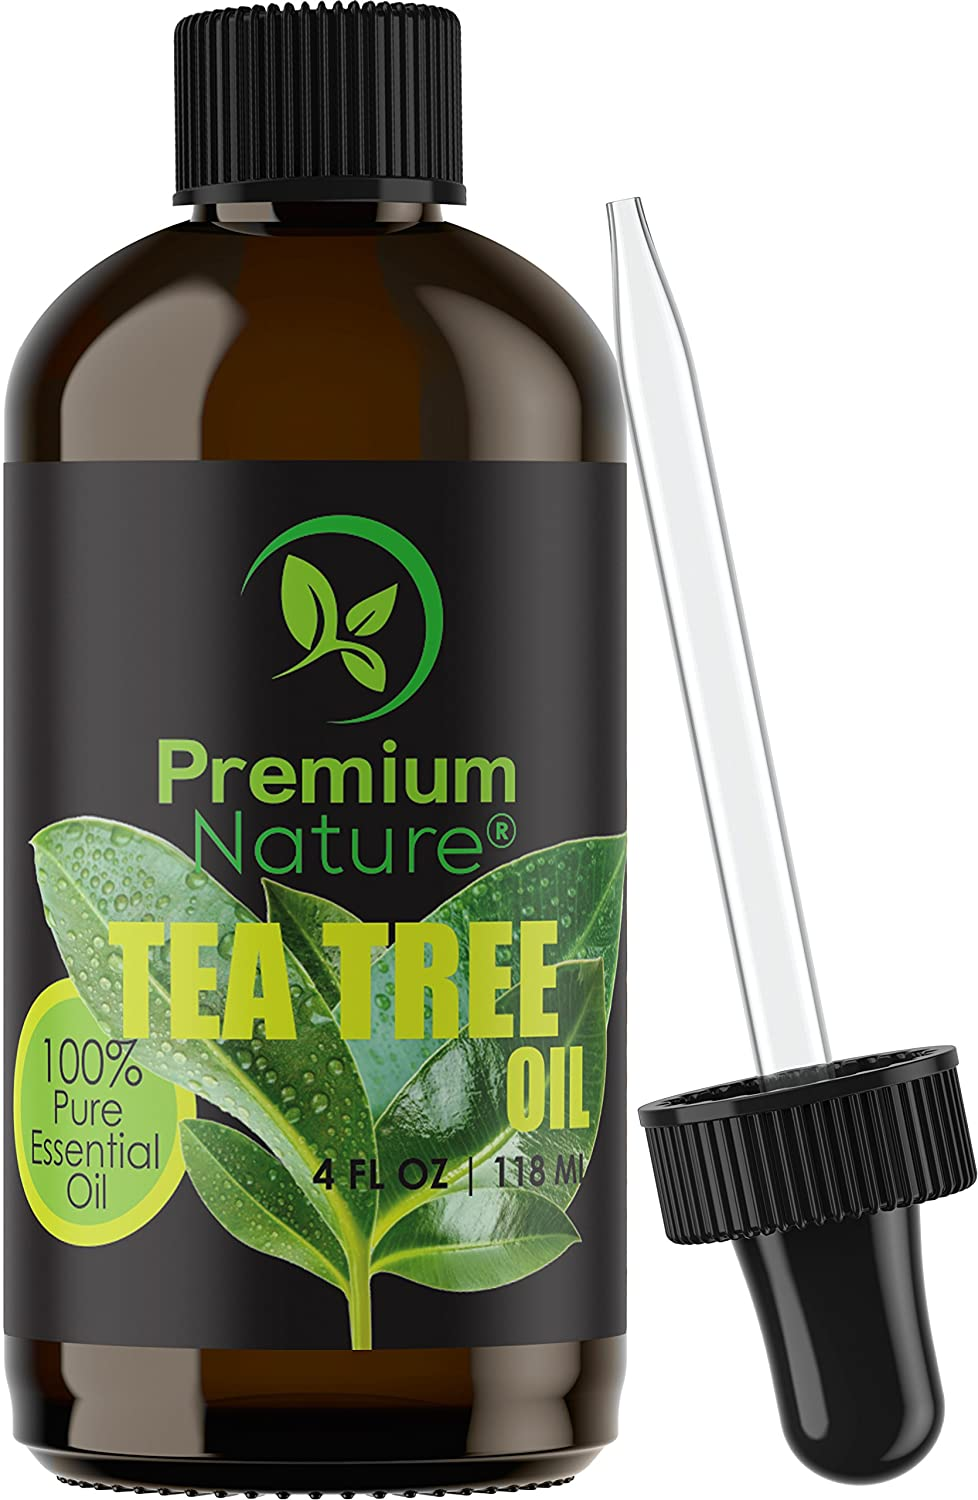 Tea Tree Pure Essential Oil - Natural Therapeutic Grade Aromatherapy Relaxation Body & Skin Tag Remover Essential Oils for Diffusers Humidifiers & Carrier Oil Toenail Nail Fungus Acne & Lice Treatment Premium Nature